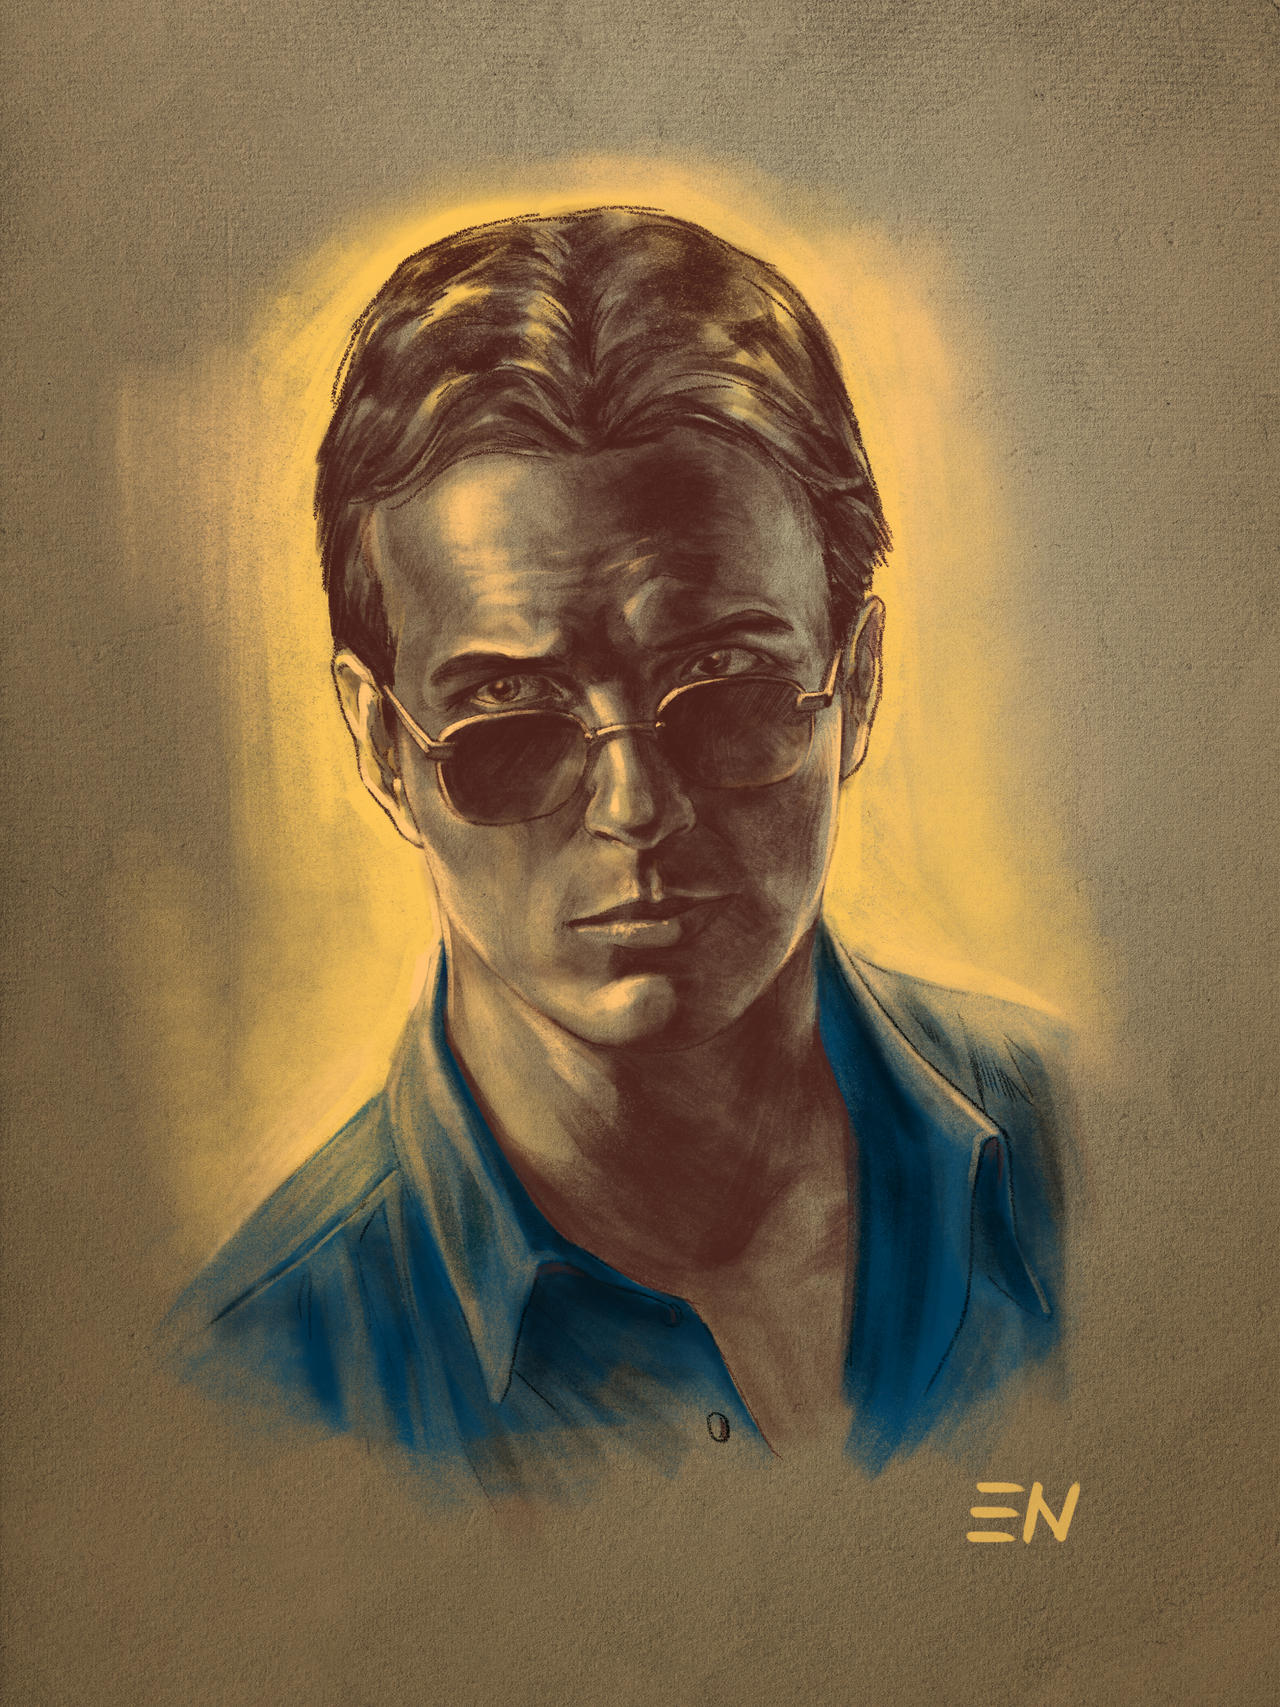 Linden Ashby As Johnny Cage By Arch2626 On Deviantart